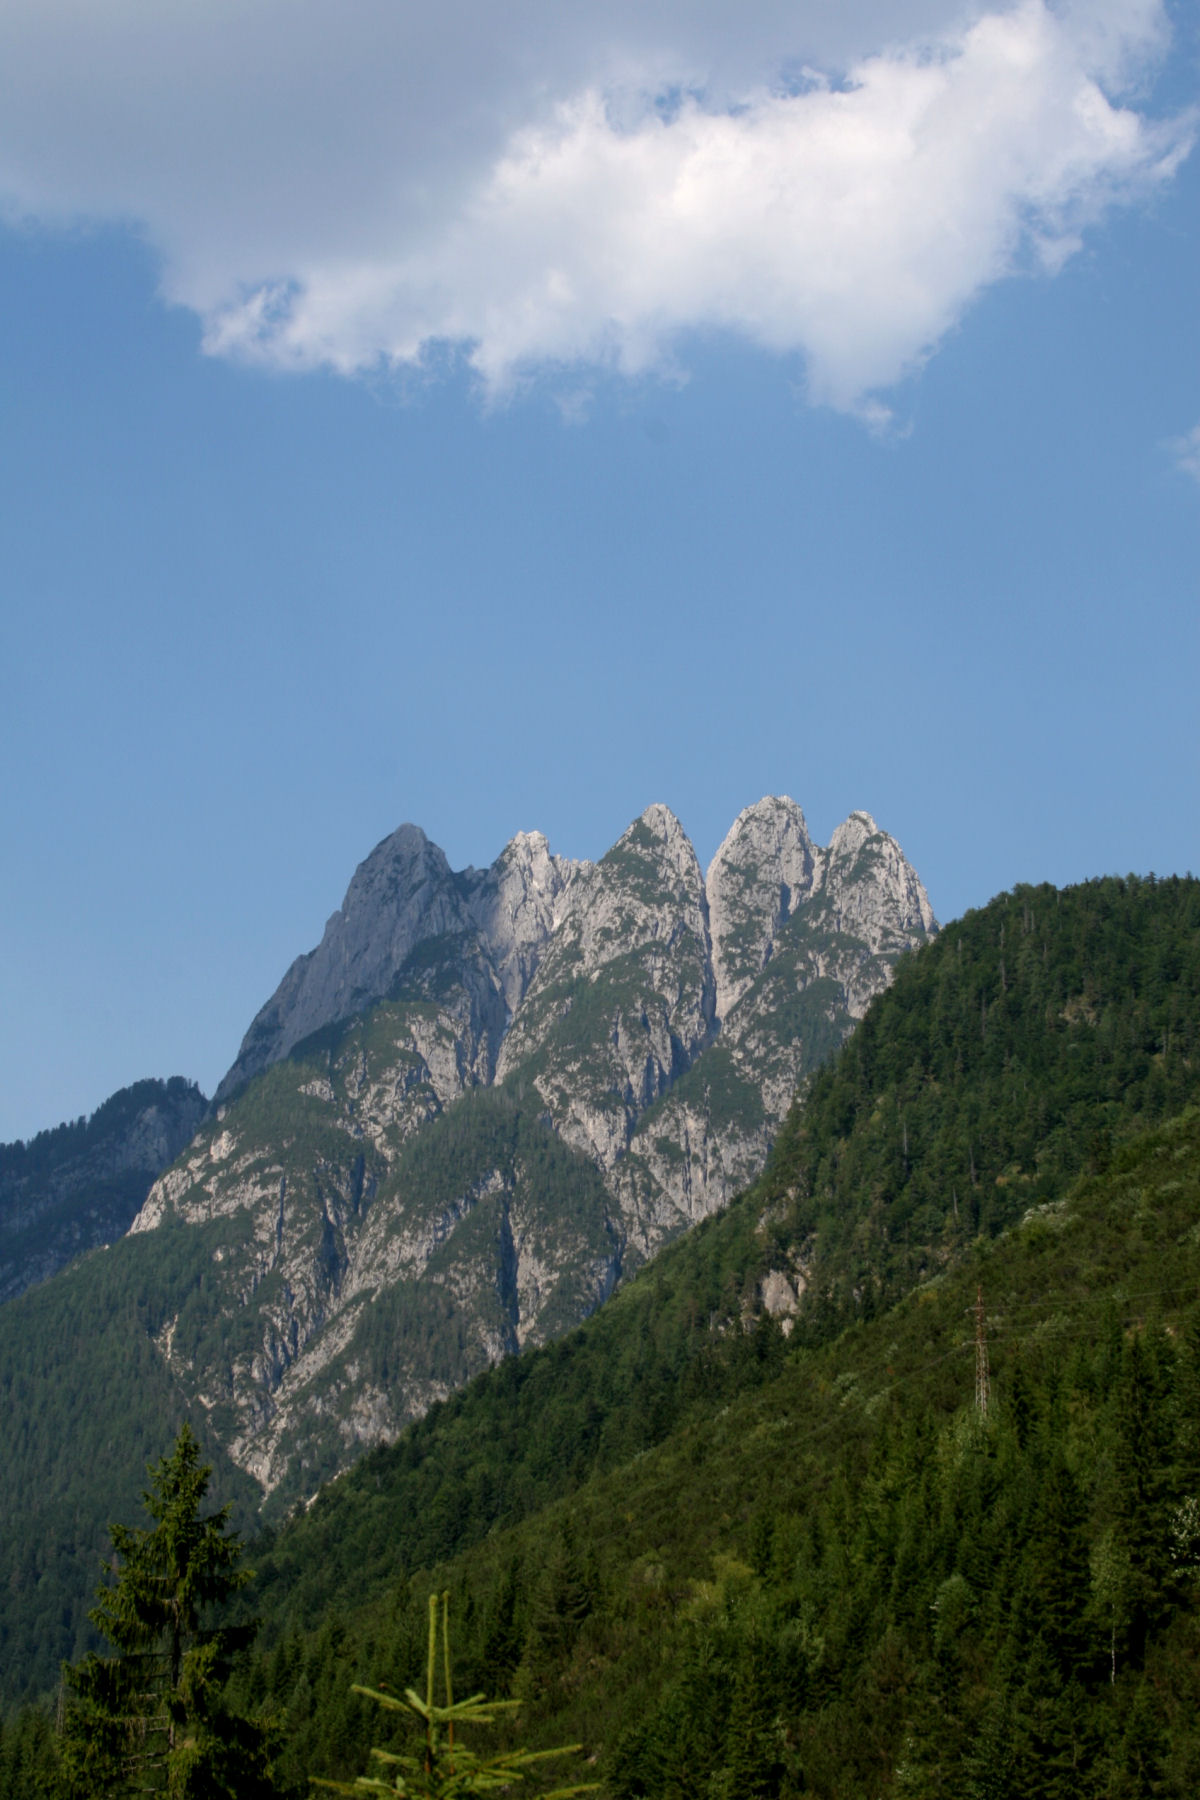 View of the Cinque Punte mountain from the Predil lake